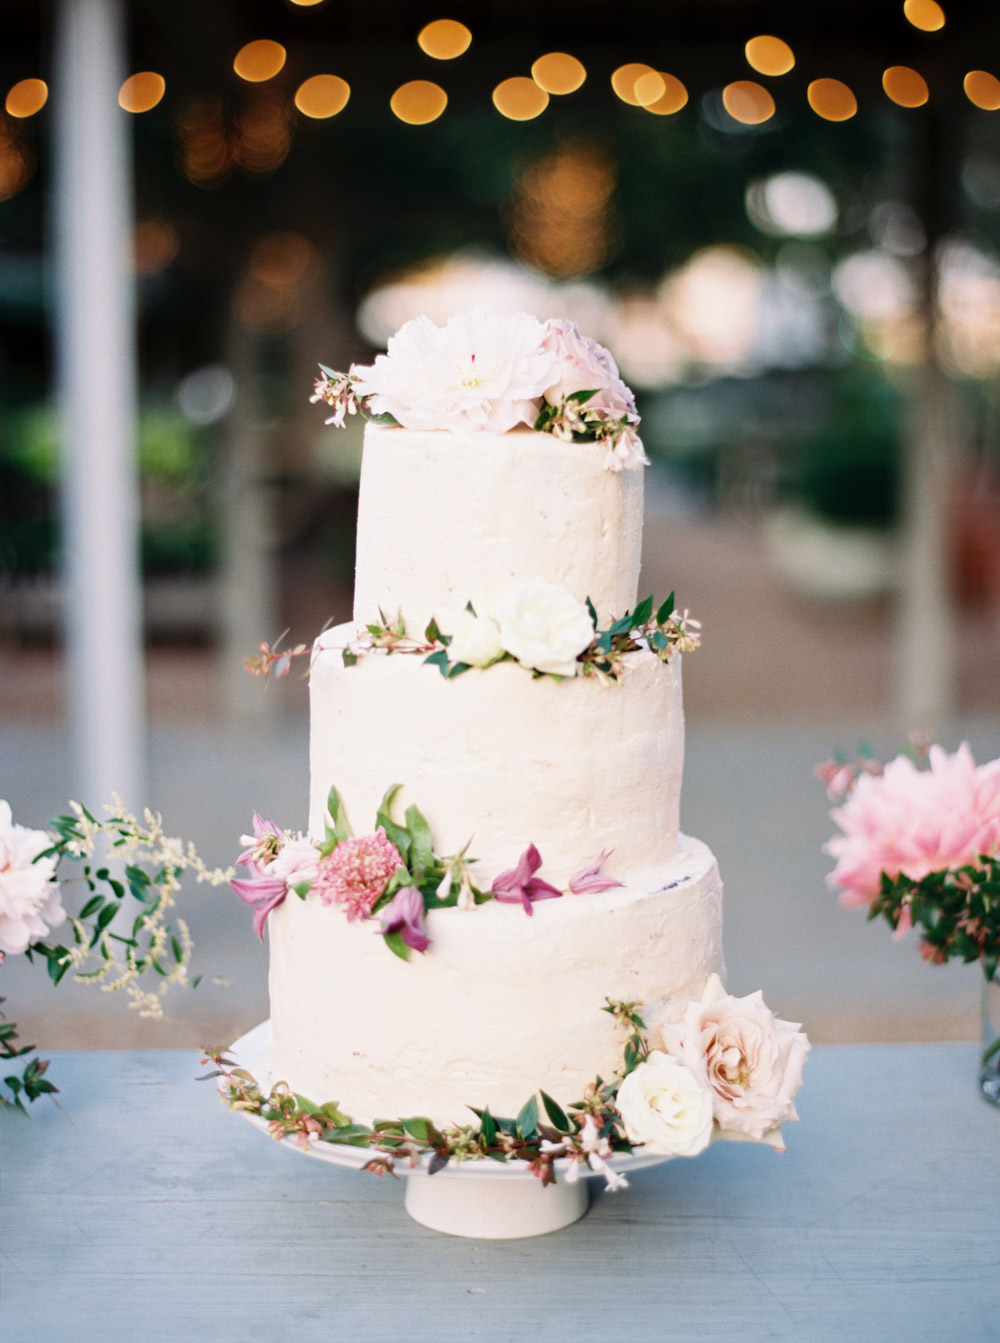 Everything You Need to Know About Having Your Wedding Cake Delivered